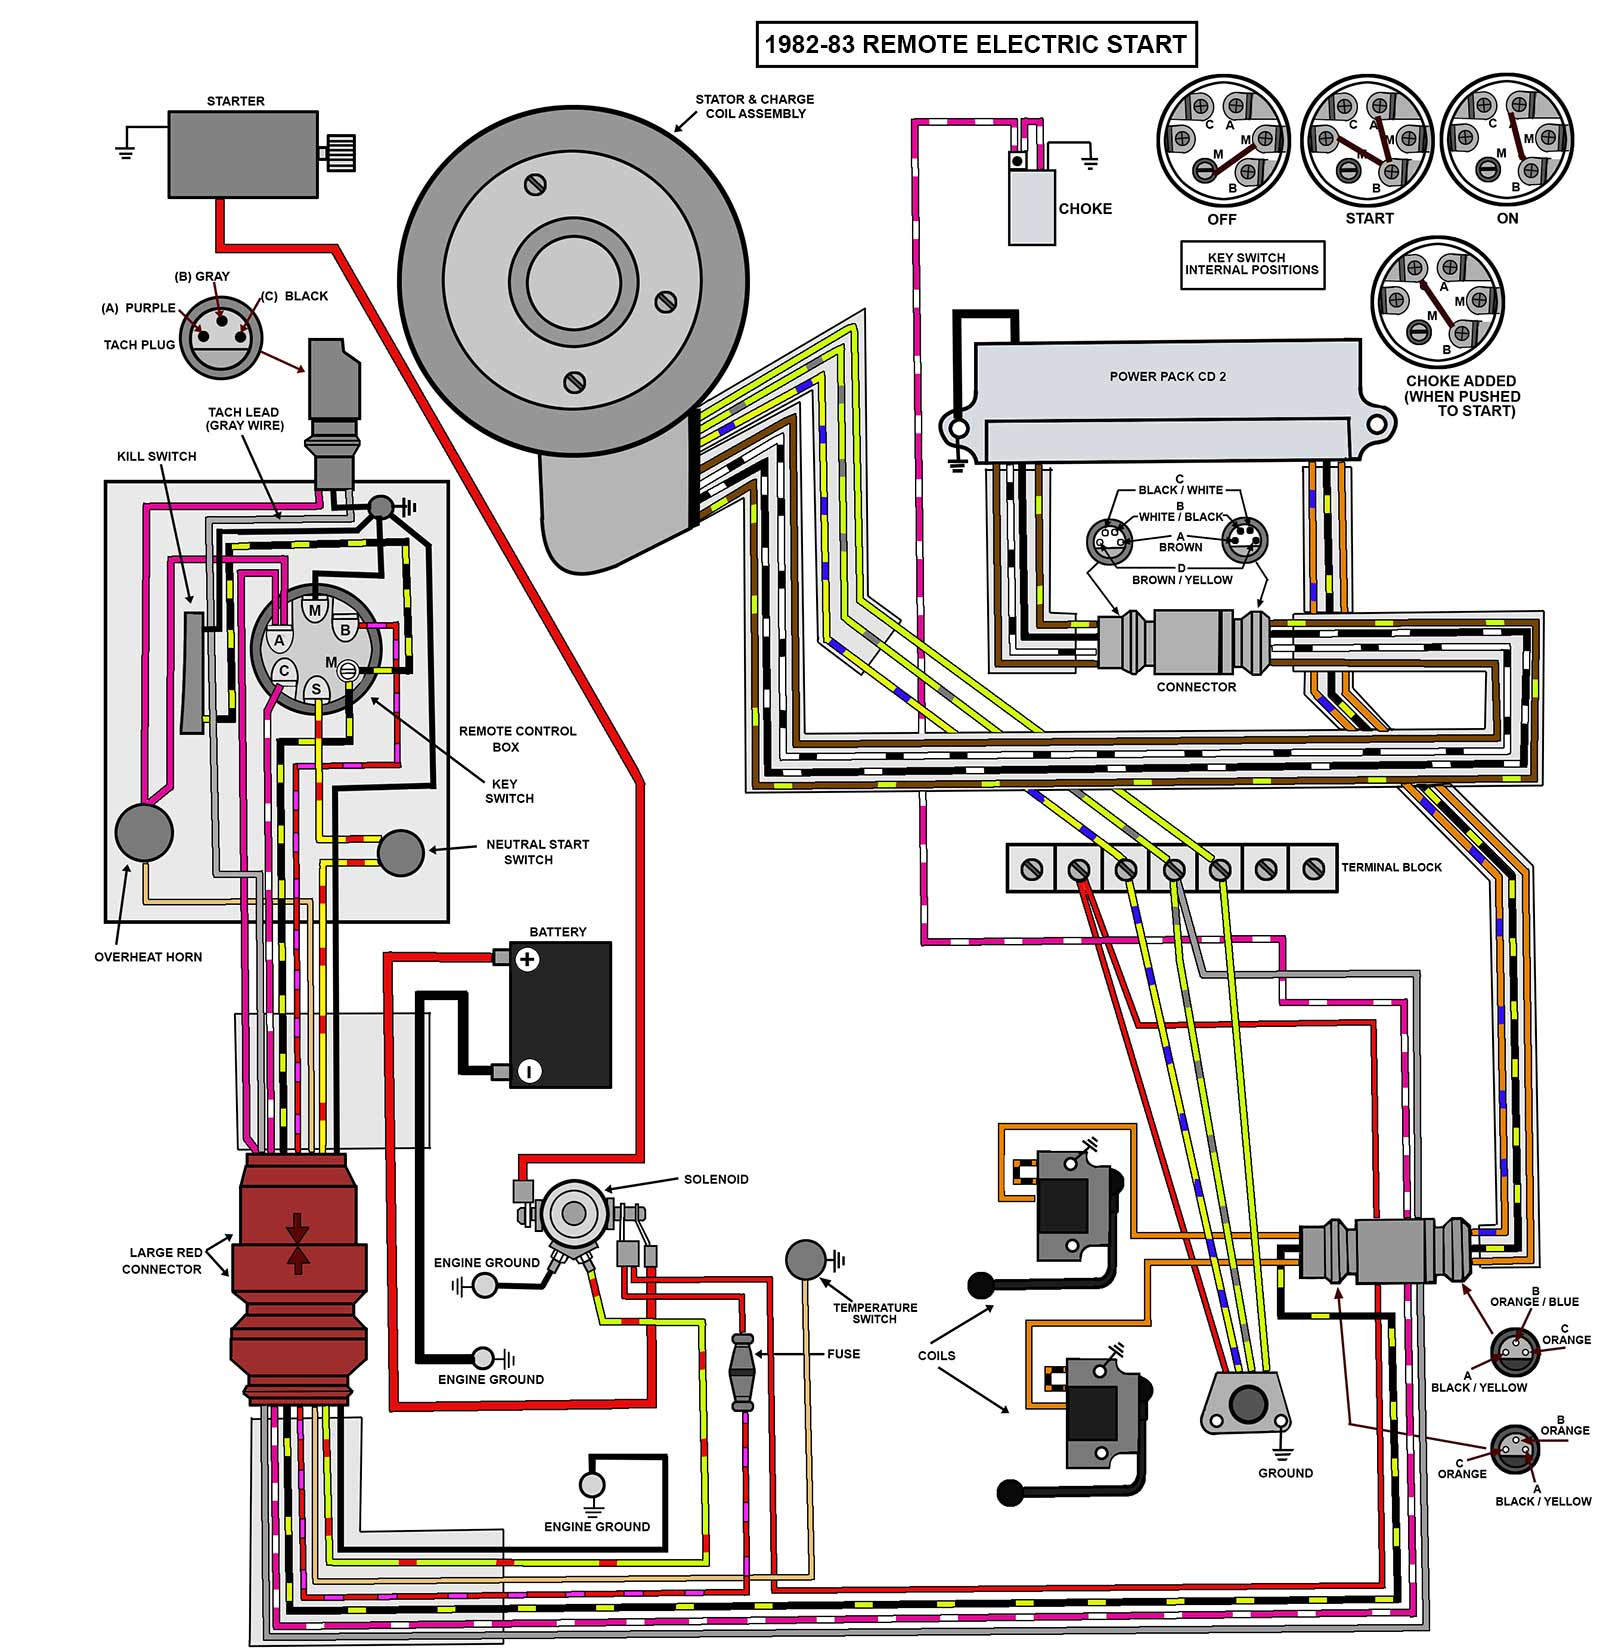 mastertech marine evinrude johnson outboard wiring diagrams rh maxrules com 1988 50 HP Mercury Outboard Wiring Diagram 1991 90 HP Mercury Outboard Wiring Diagram